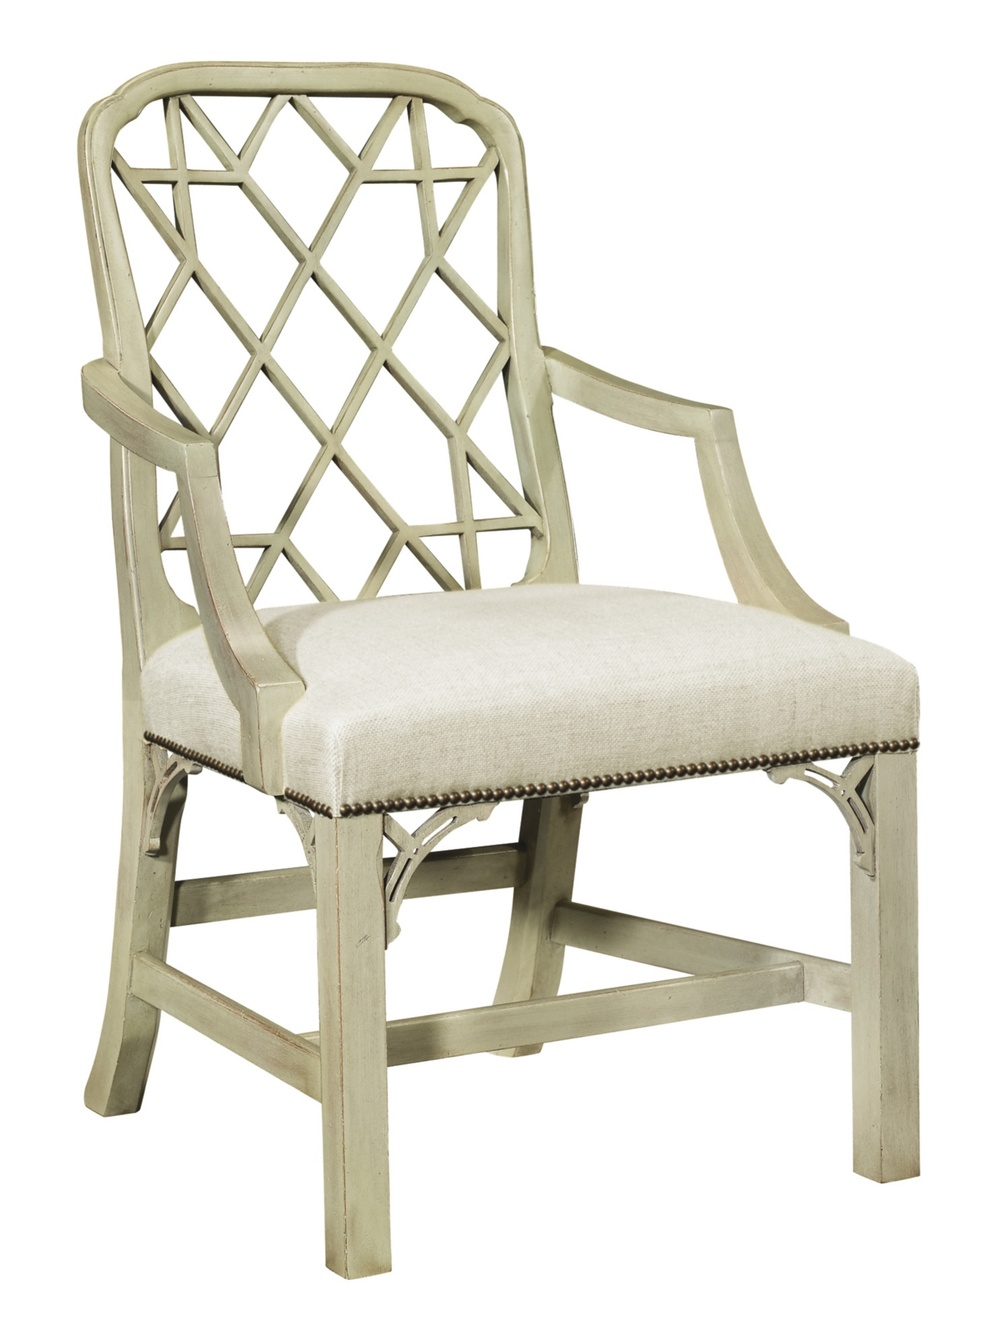 Hickory Chair - Linwood Arm Chair